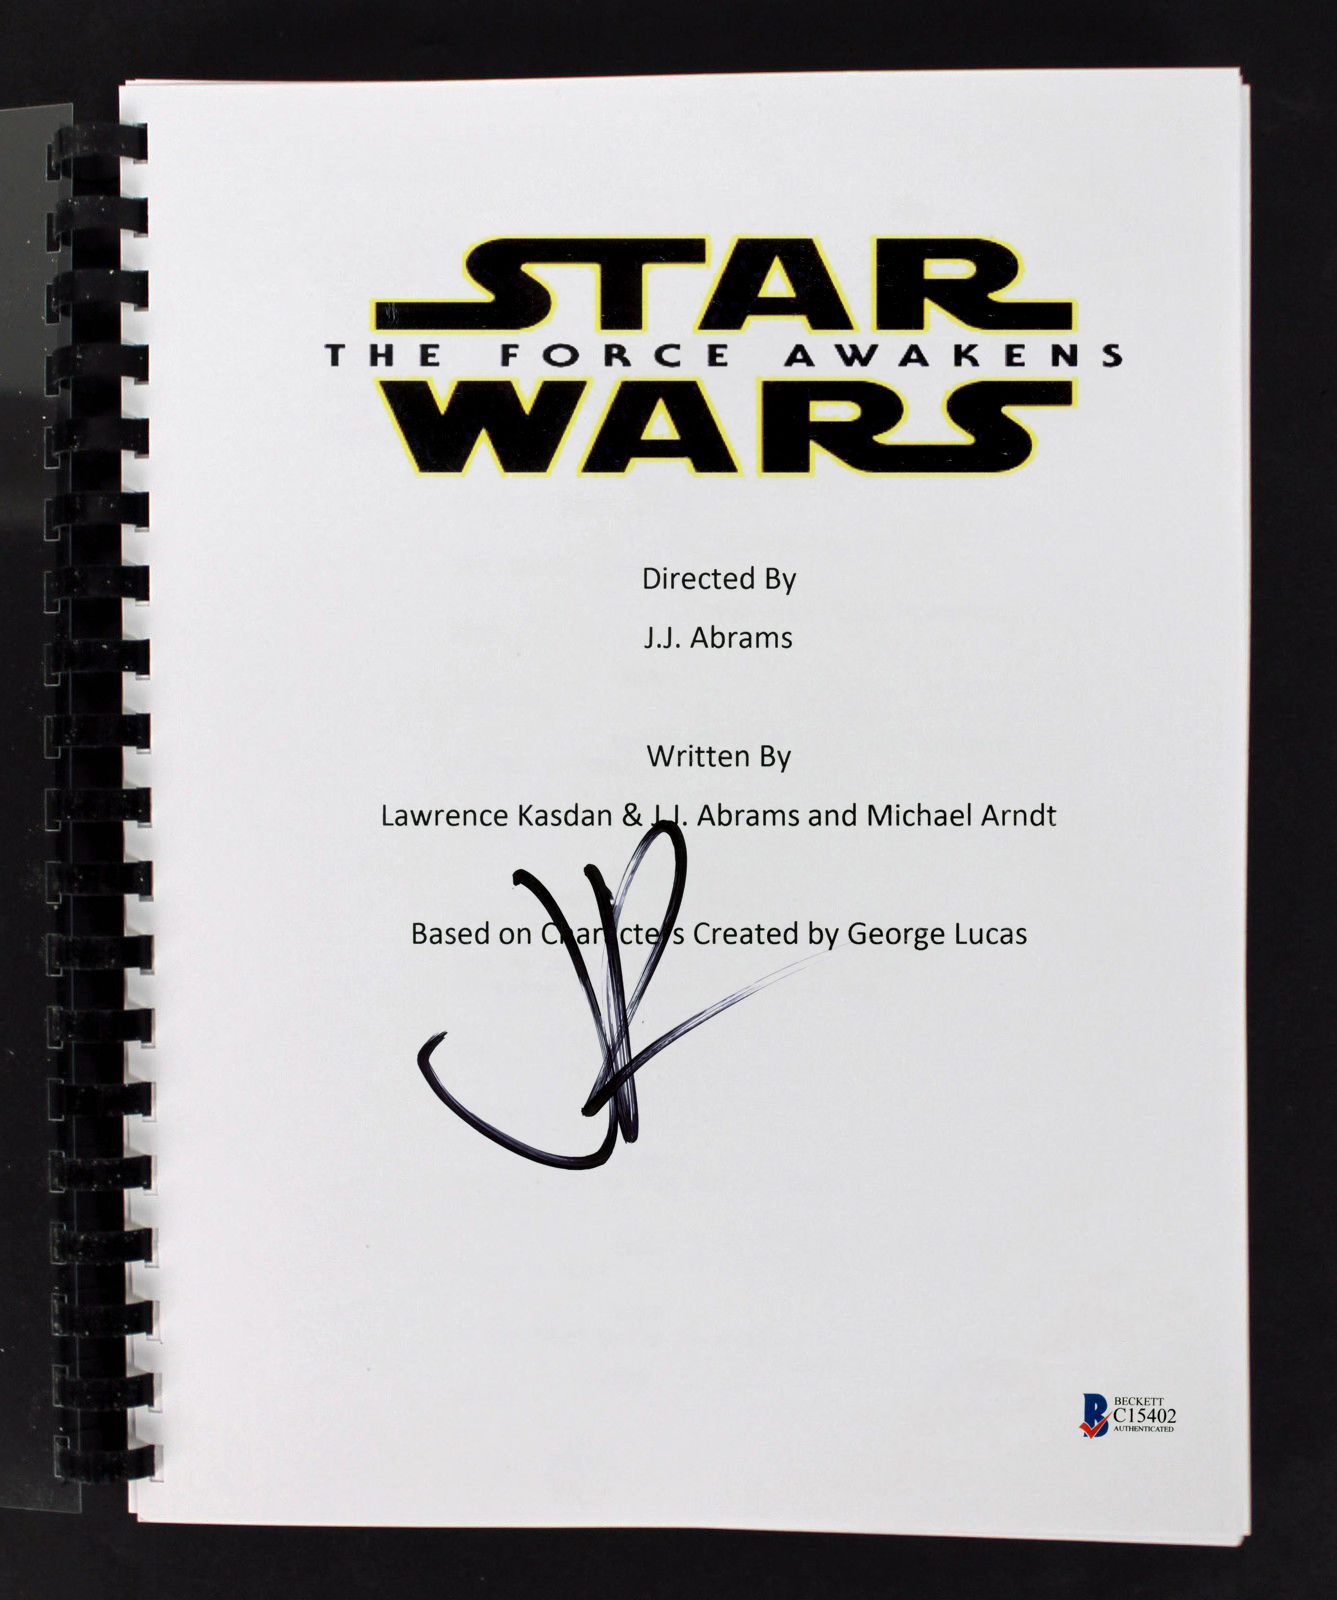 J.J. Abrams Authentic Signed Star Wars The Force Awakens Movie Script BAS C15402